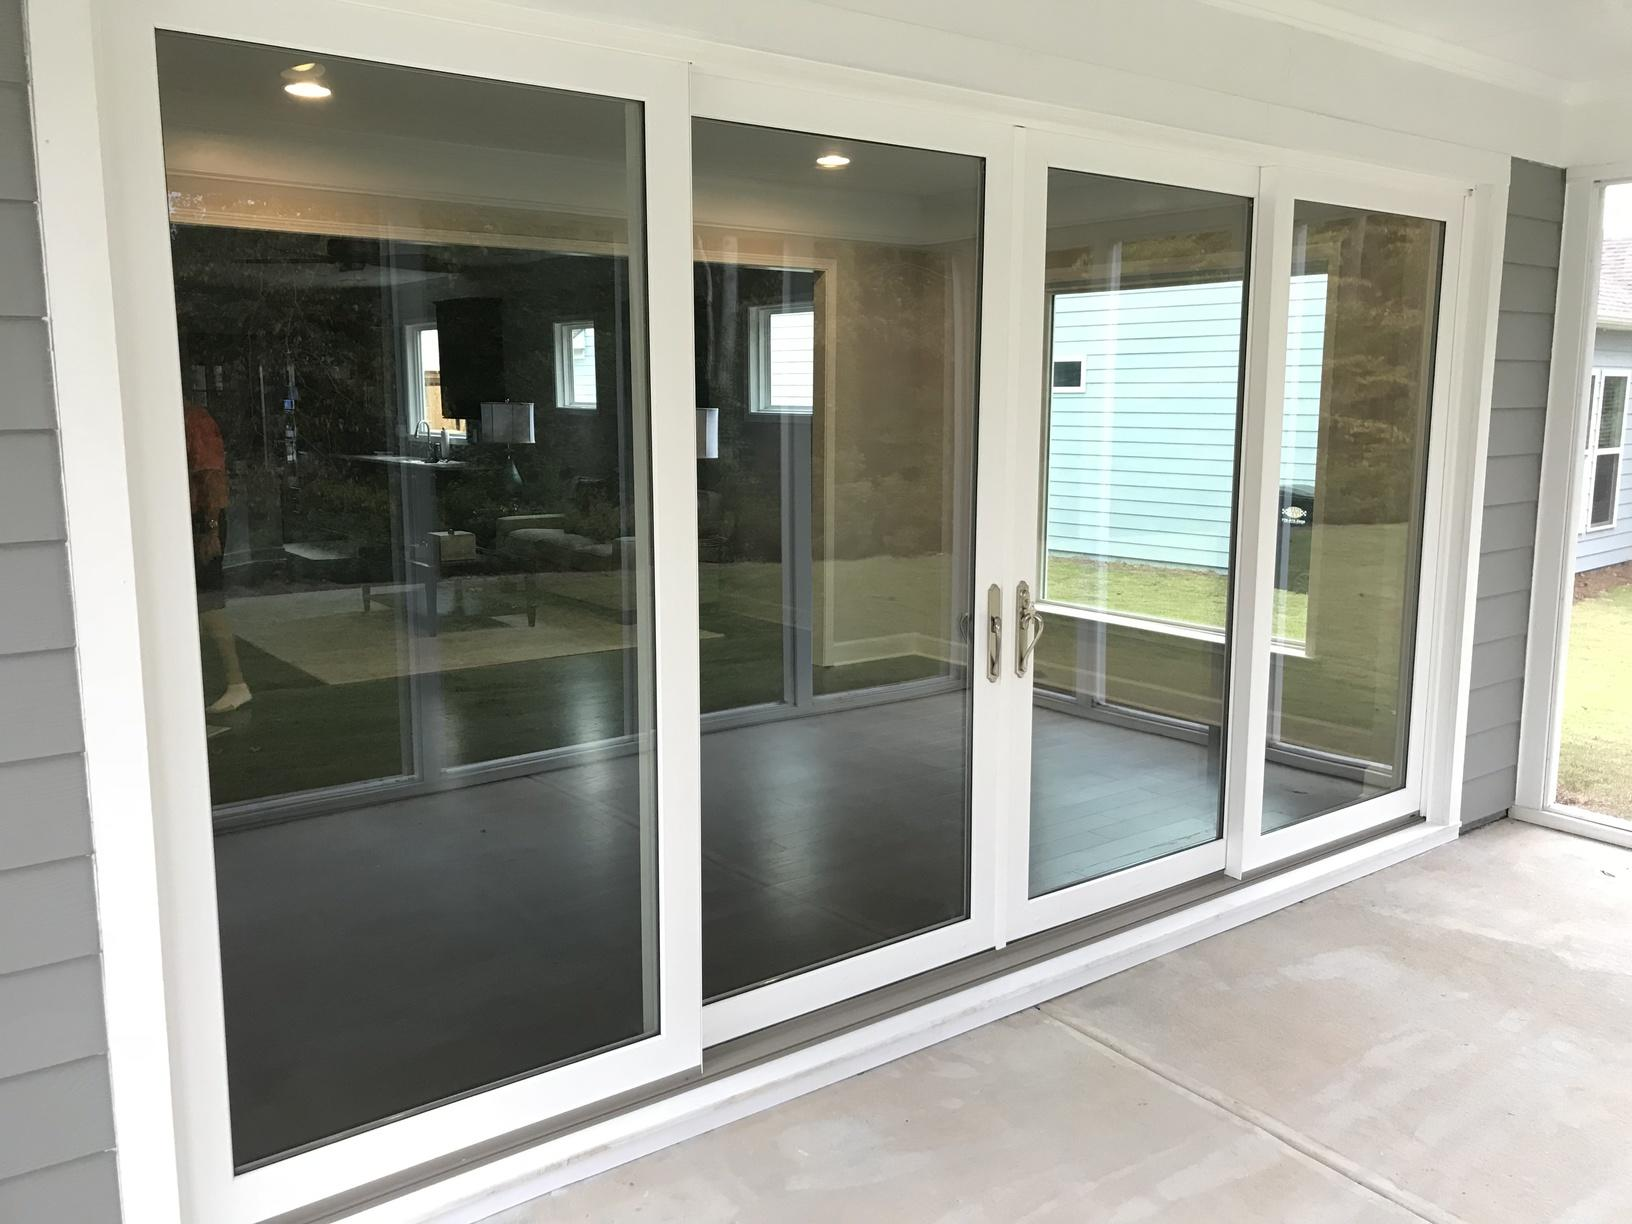 Sliding Door Conversion in Kennesaw - After Photo